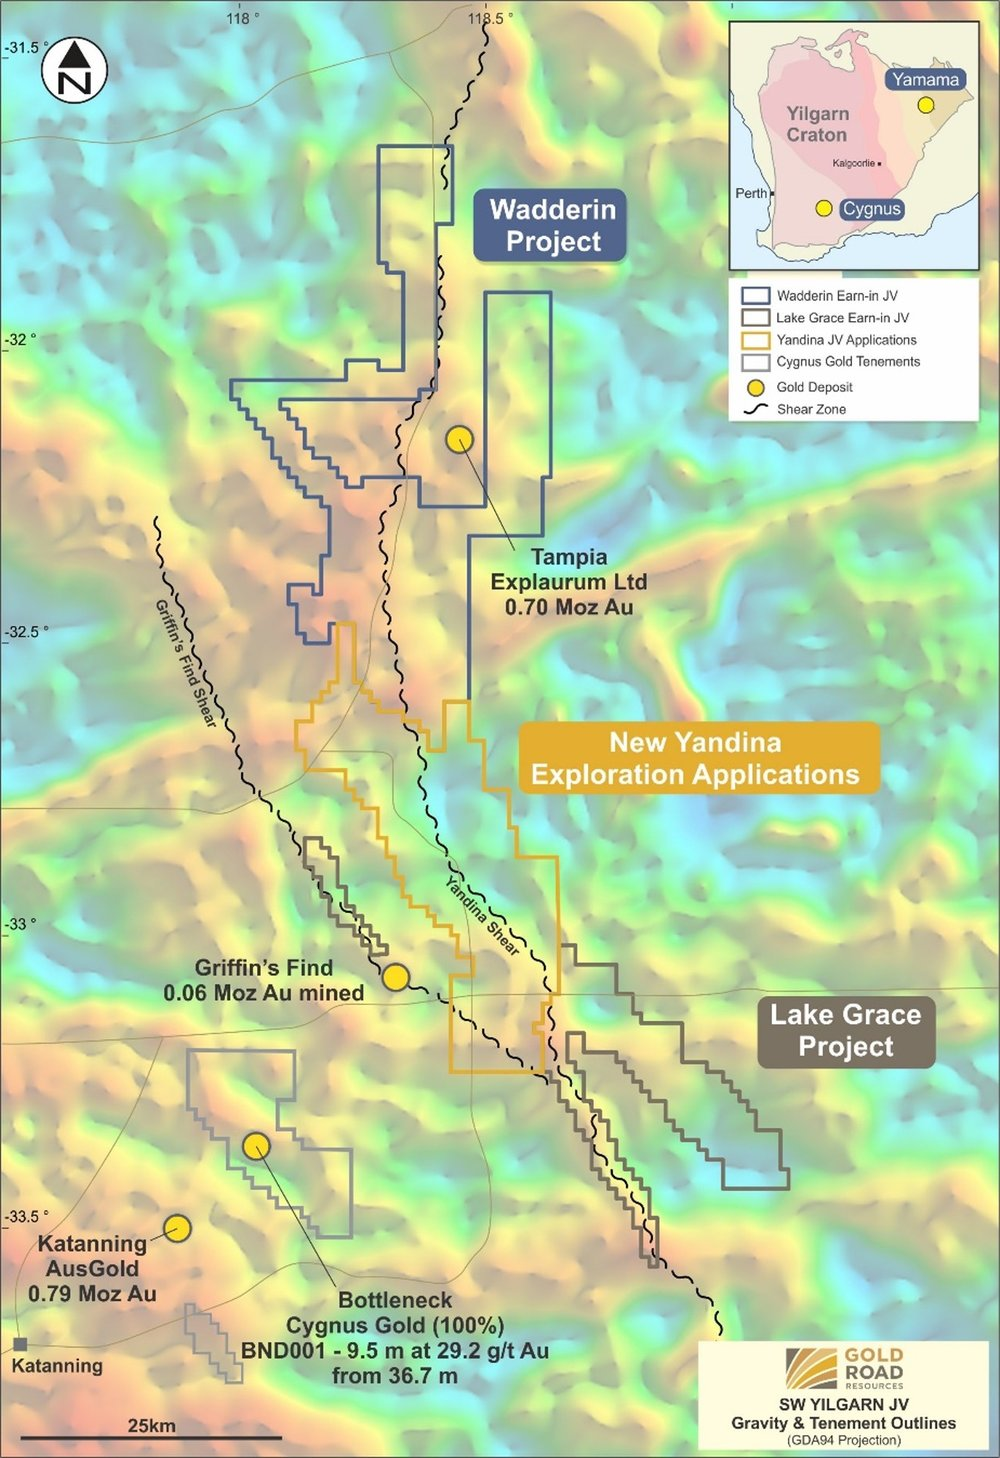 Location and outline of Cygnus - Gold Road exploration projects